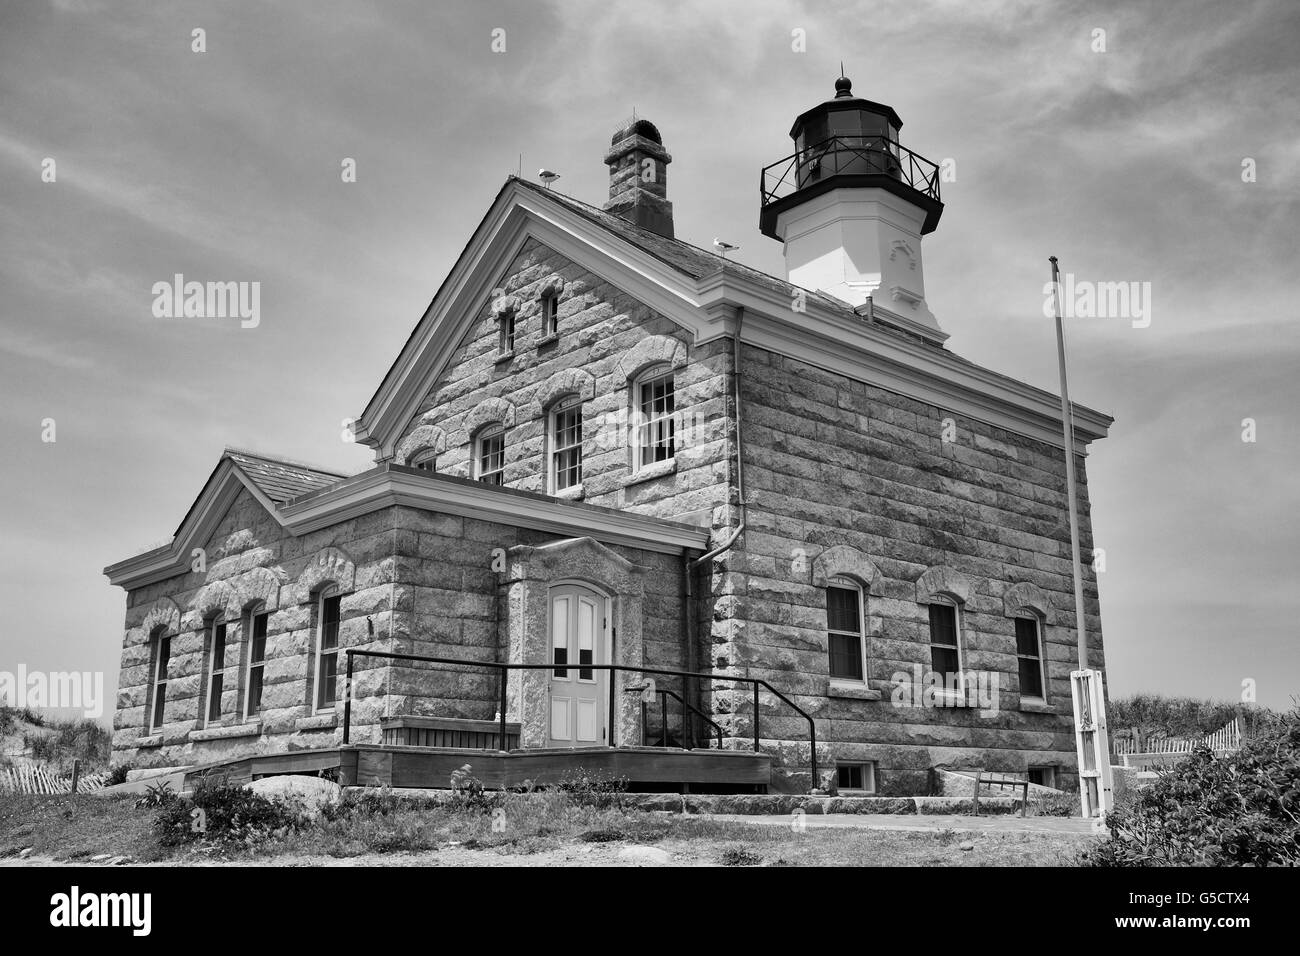 North Light Lighthouse, Block Island, Rhode Island - Stock Image